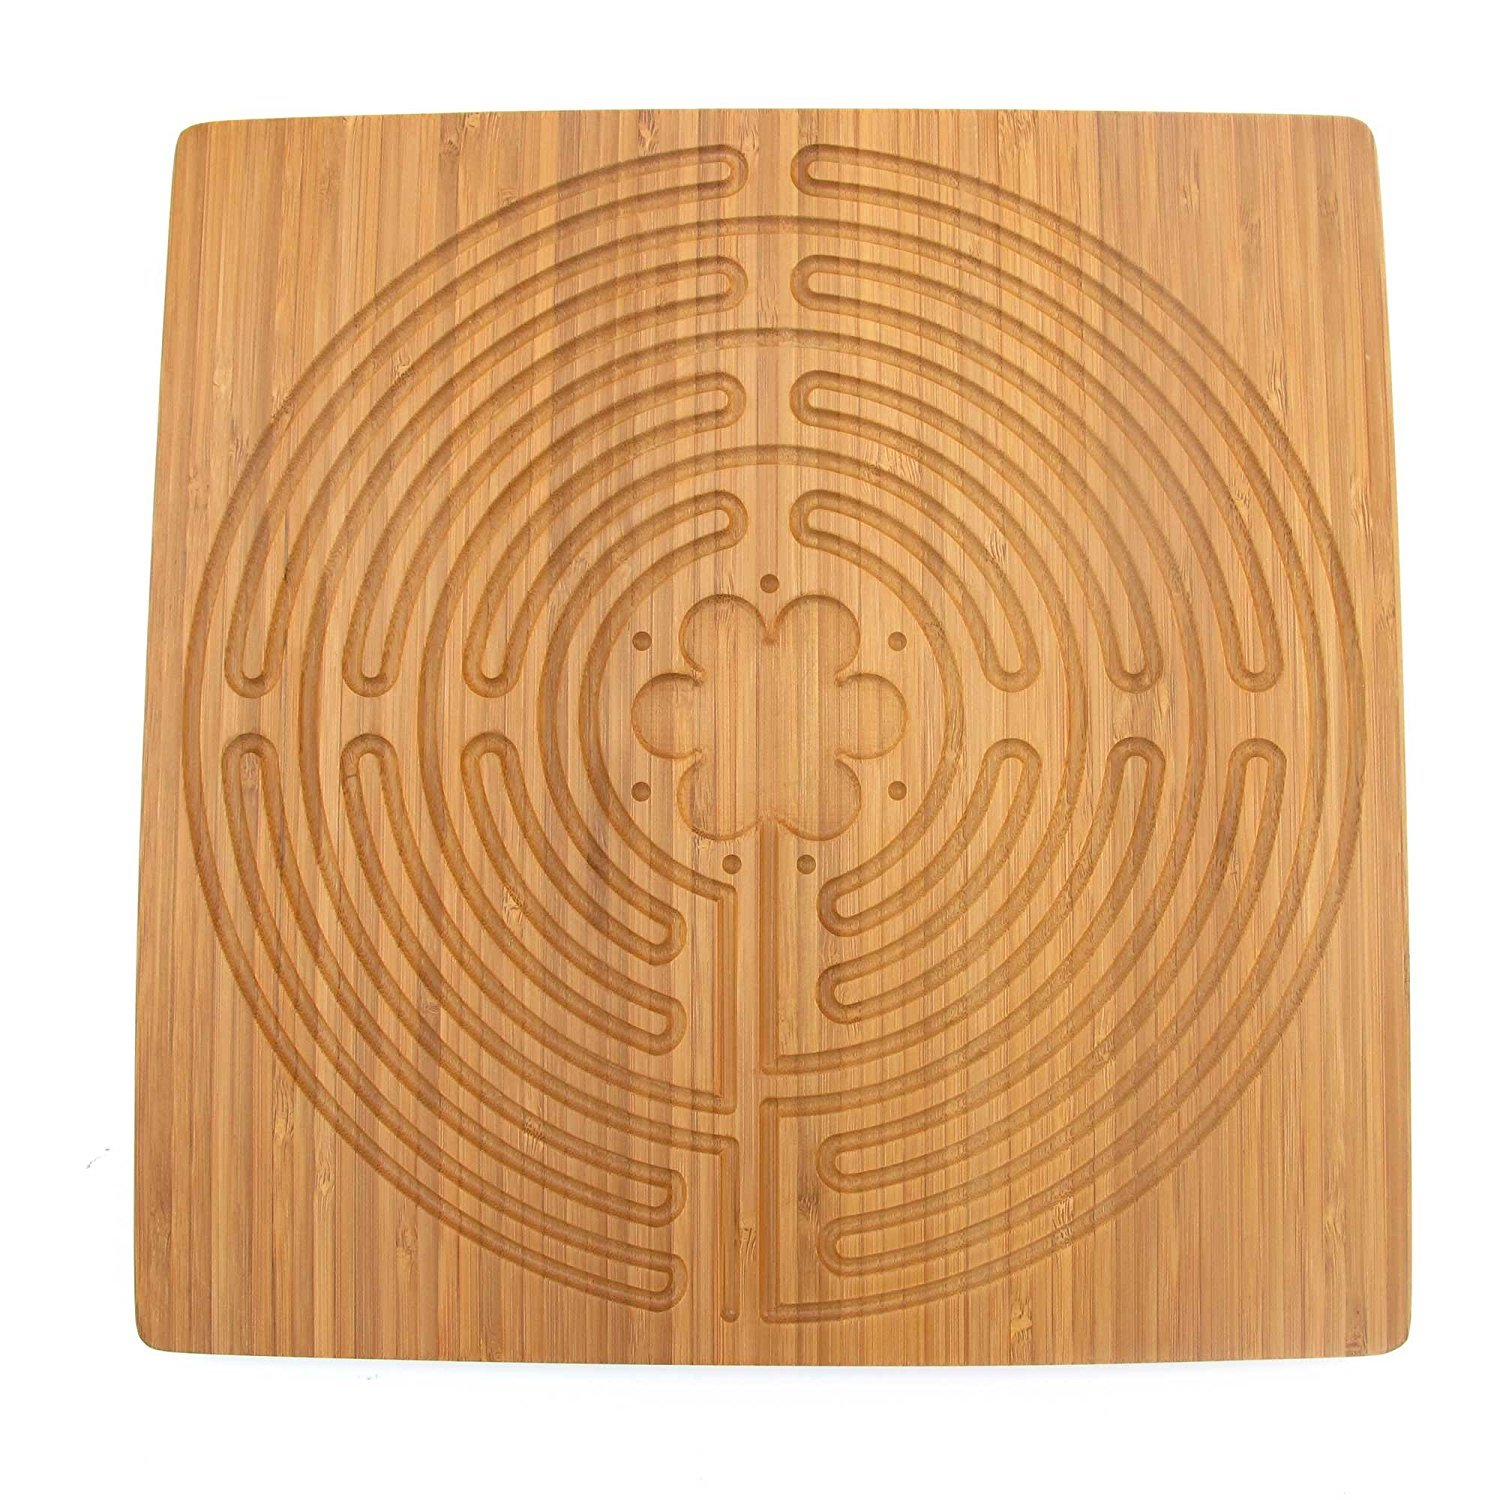 Chartres Finger Labyrinth for Mindfulness and Meditation. Reduce Stress with Labyrinth Finger Meditation. (Square-Chartres-Large) by MOMMAS WOODEN SPOON